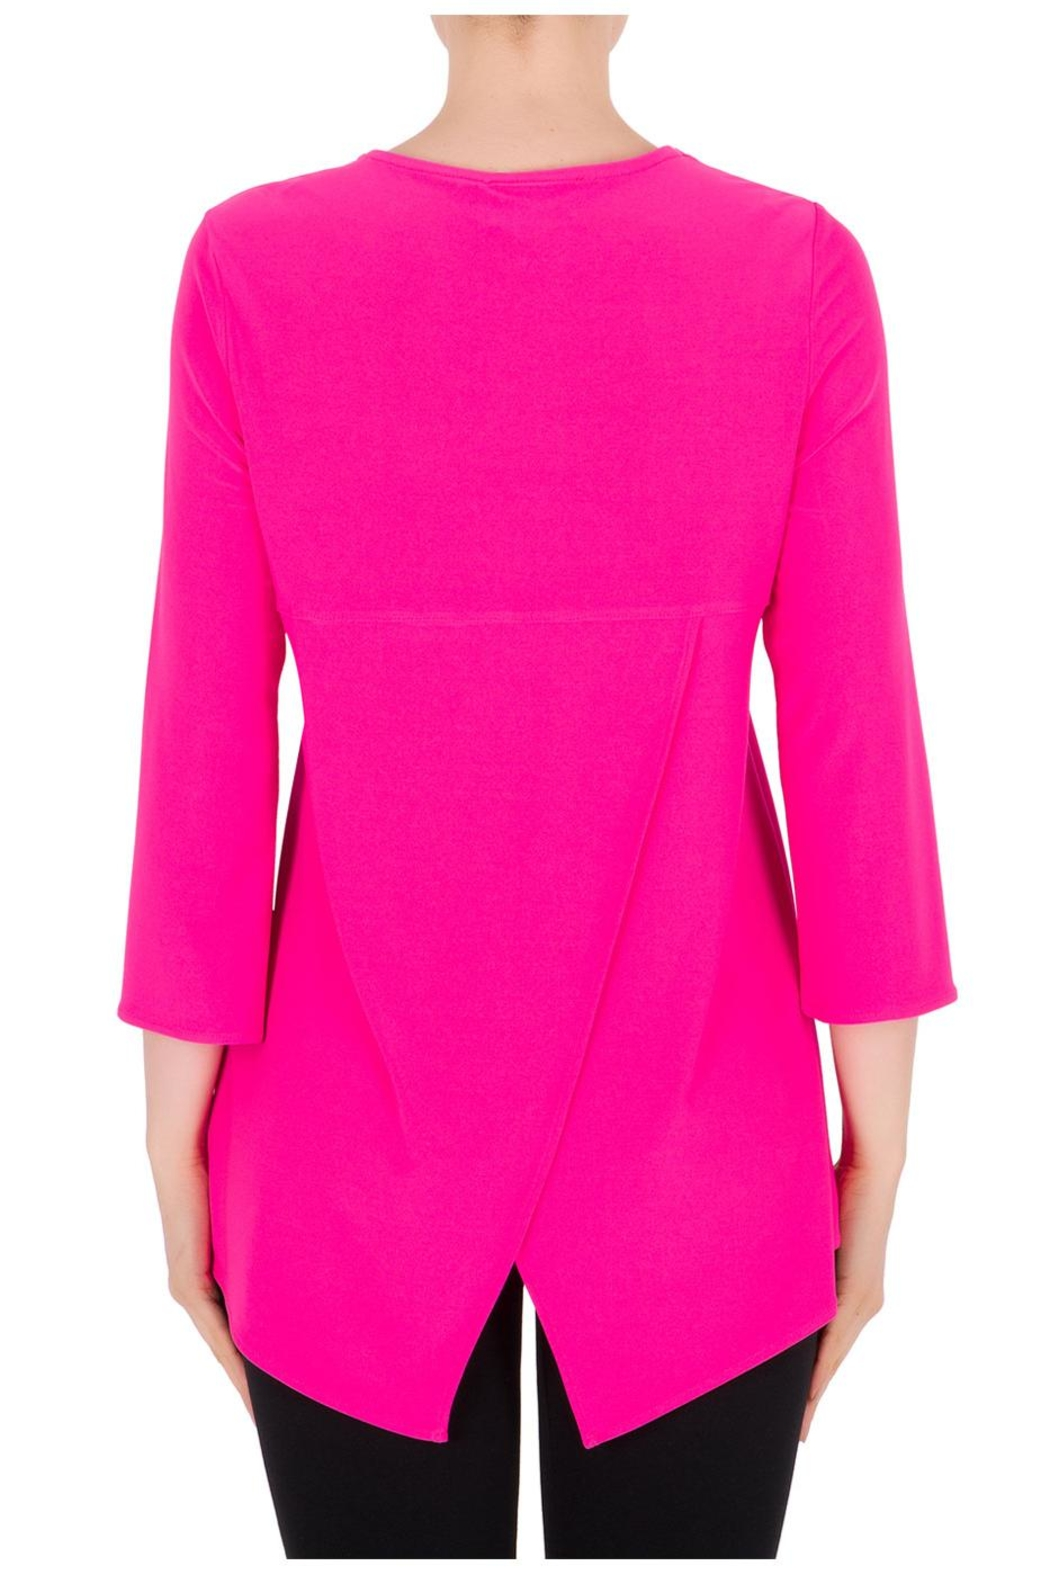 Joseph Ribkoff Neon Pink Top - Side Cropped Image